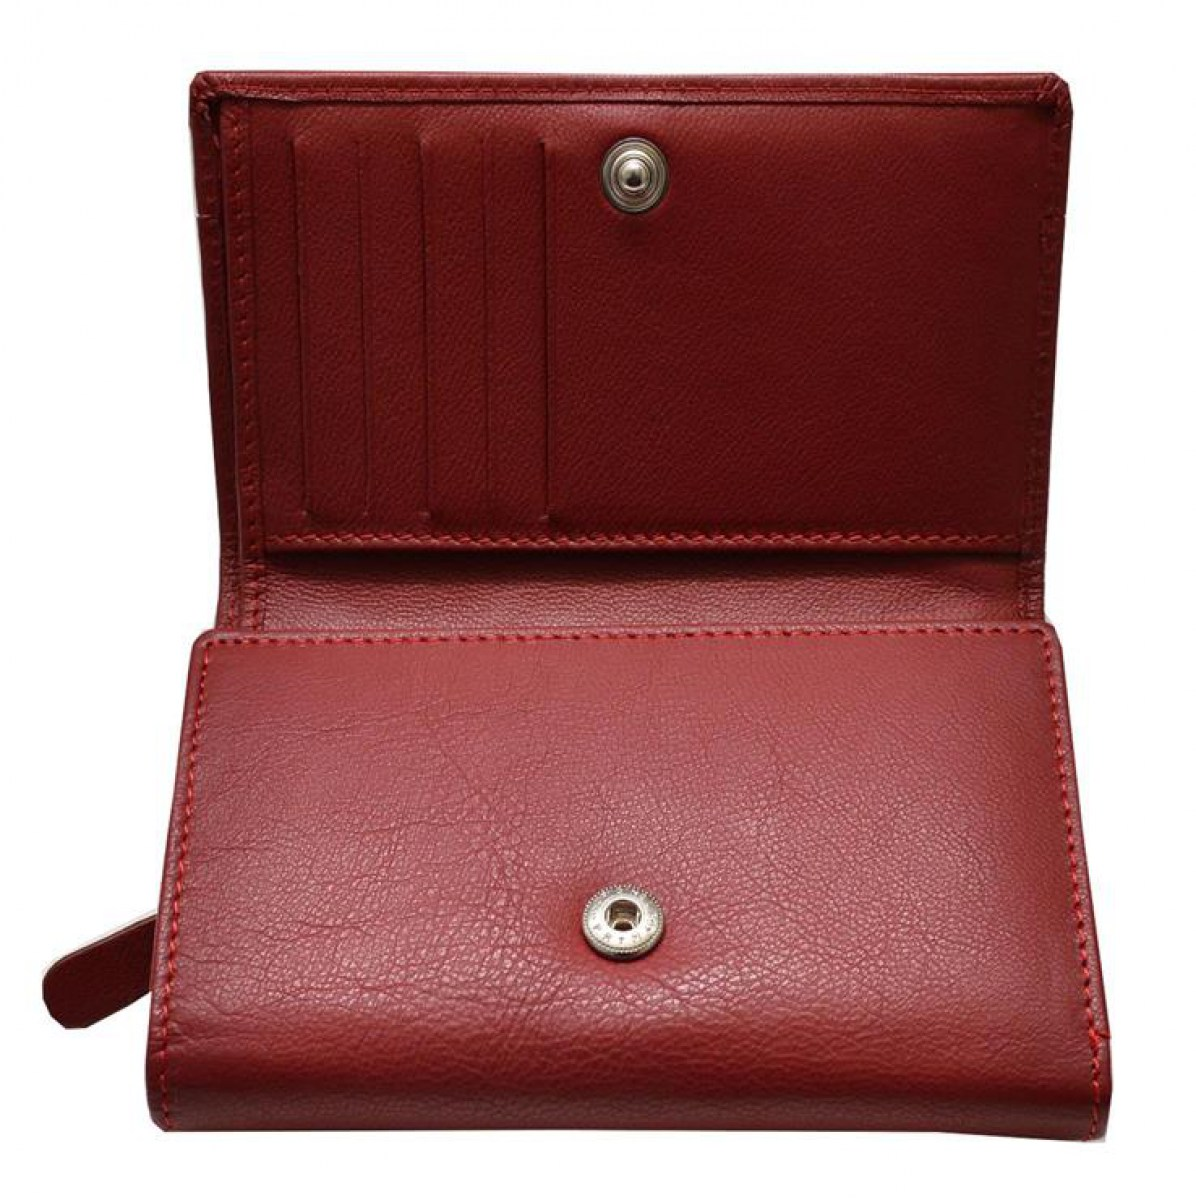 29-WALLET-1-5855 (RED) 2